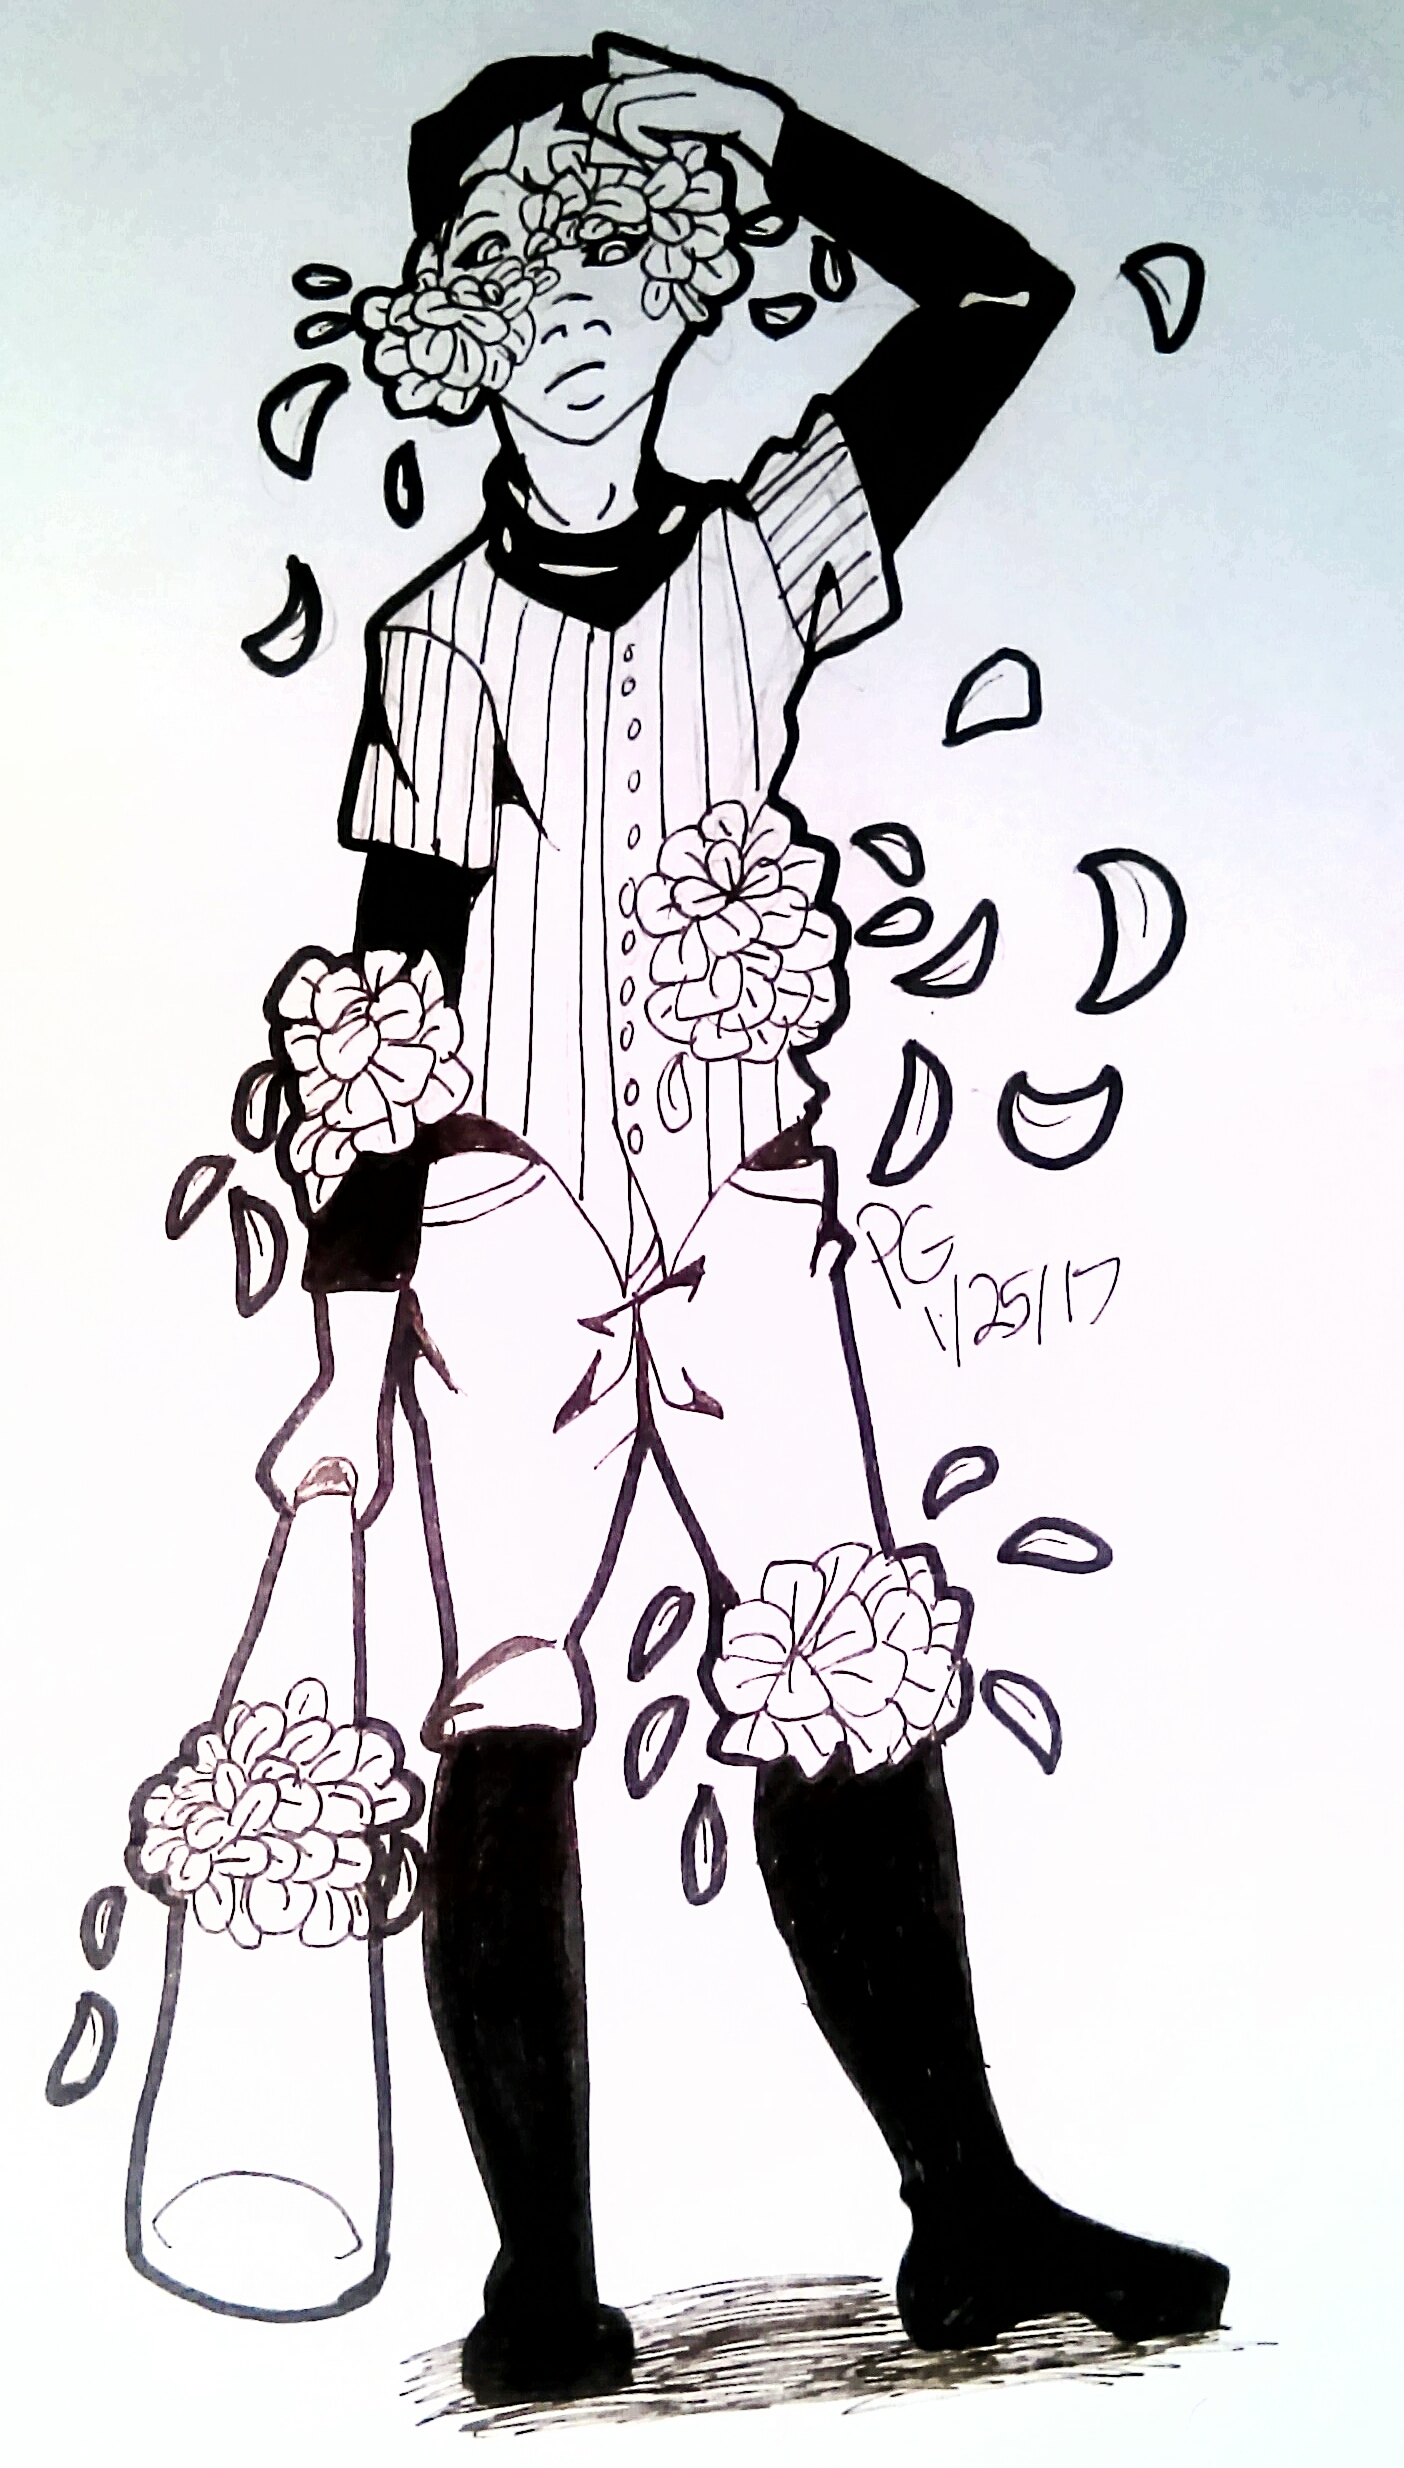 OFF The Batter with more flowers